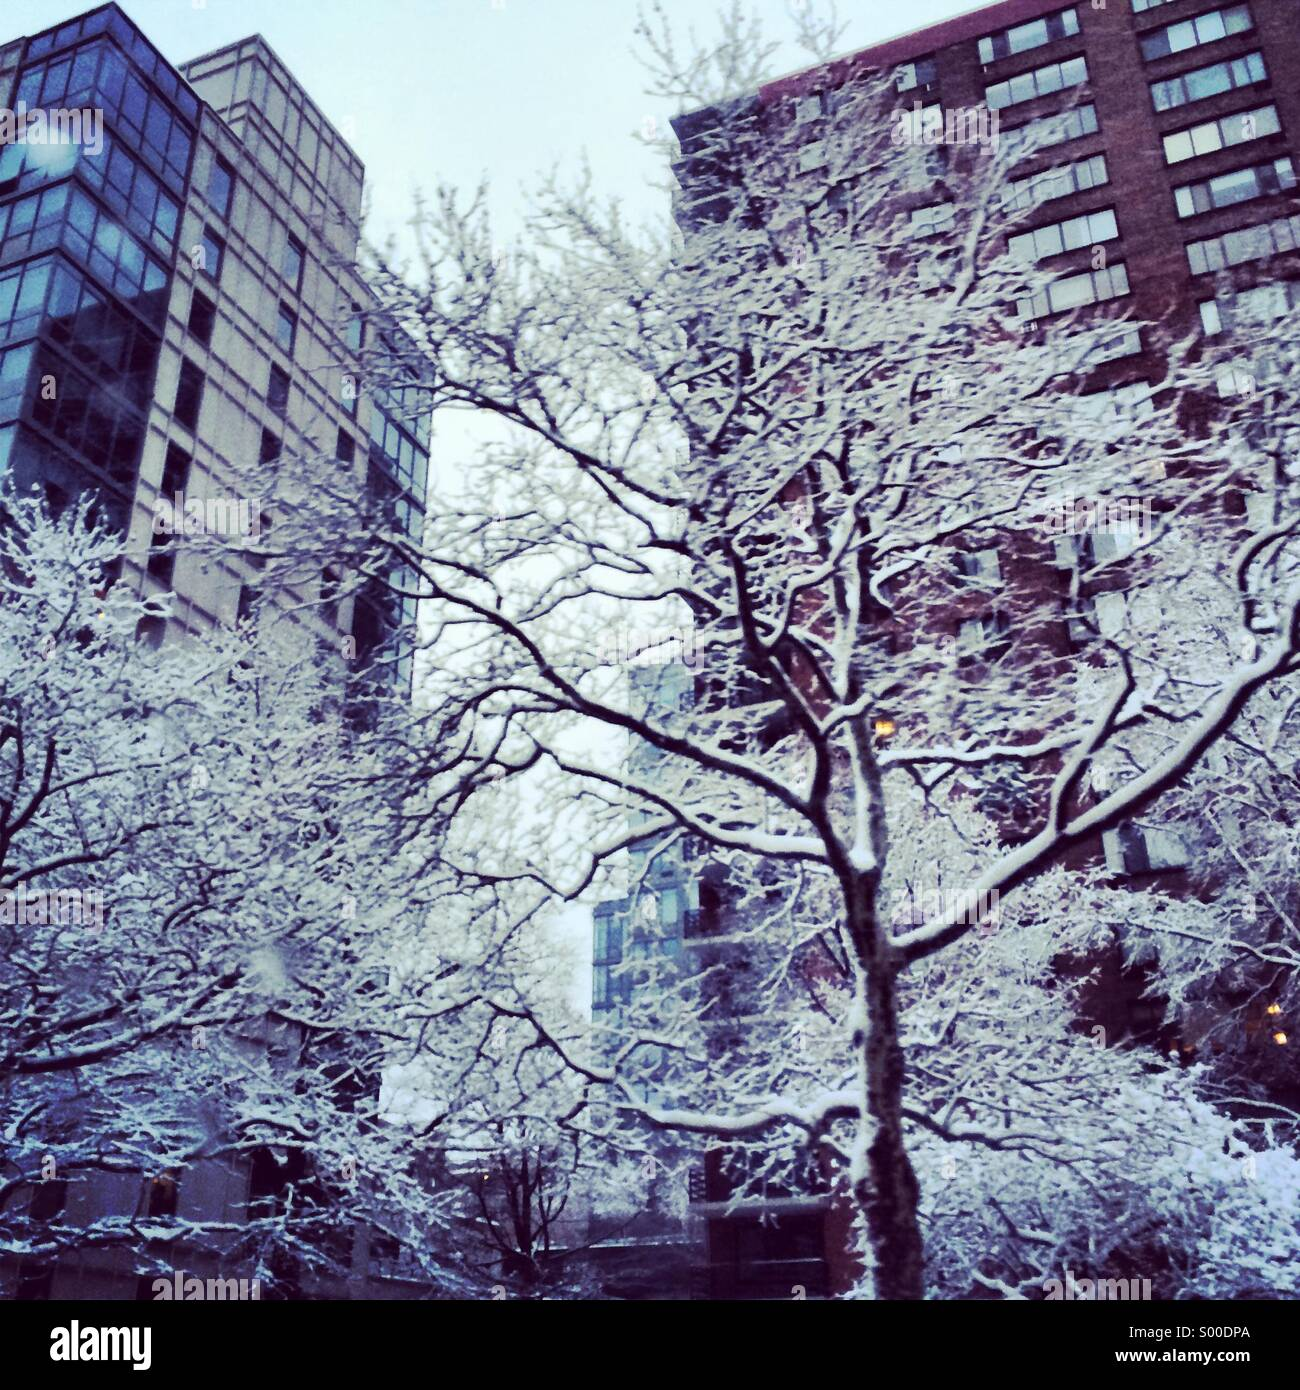 A tree covered in snow during New York winter. - Stock Image